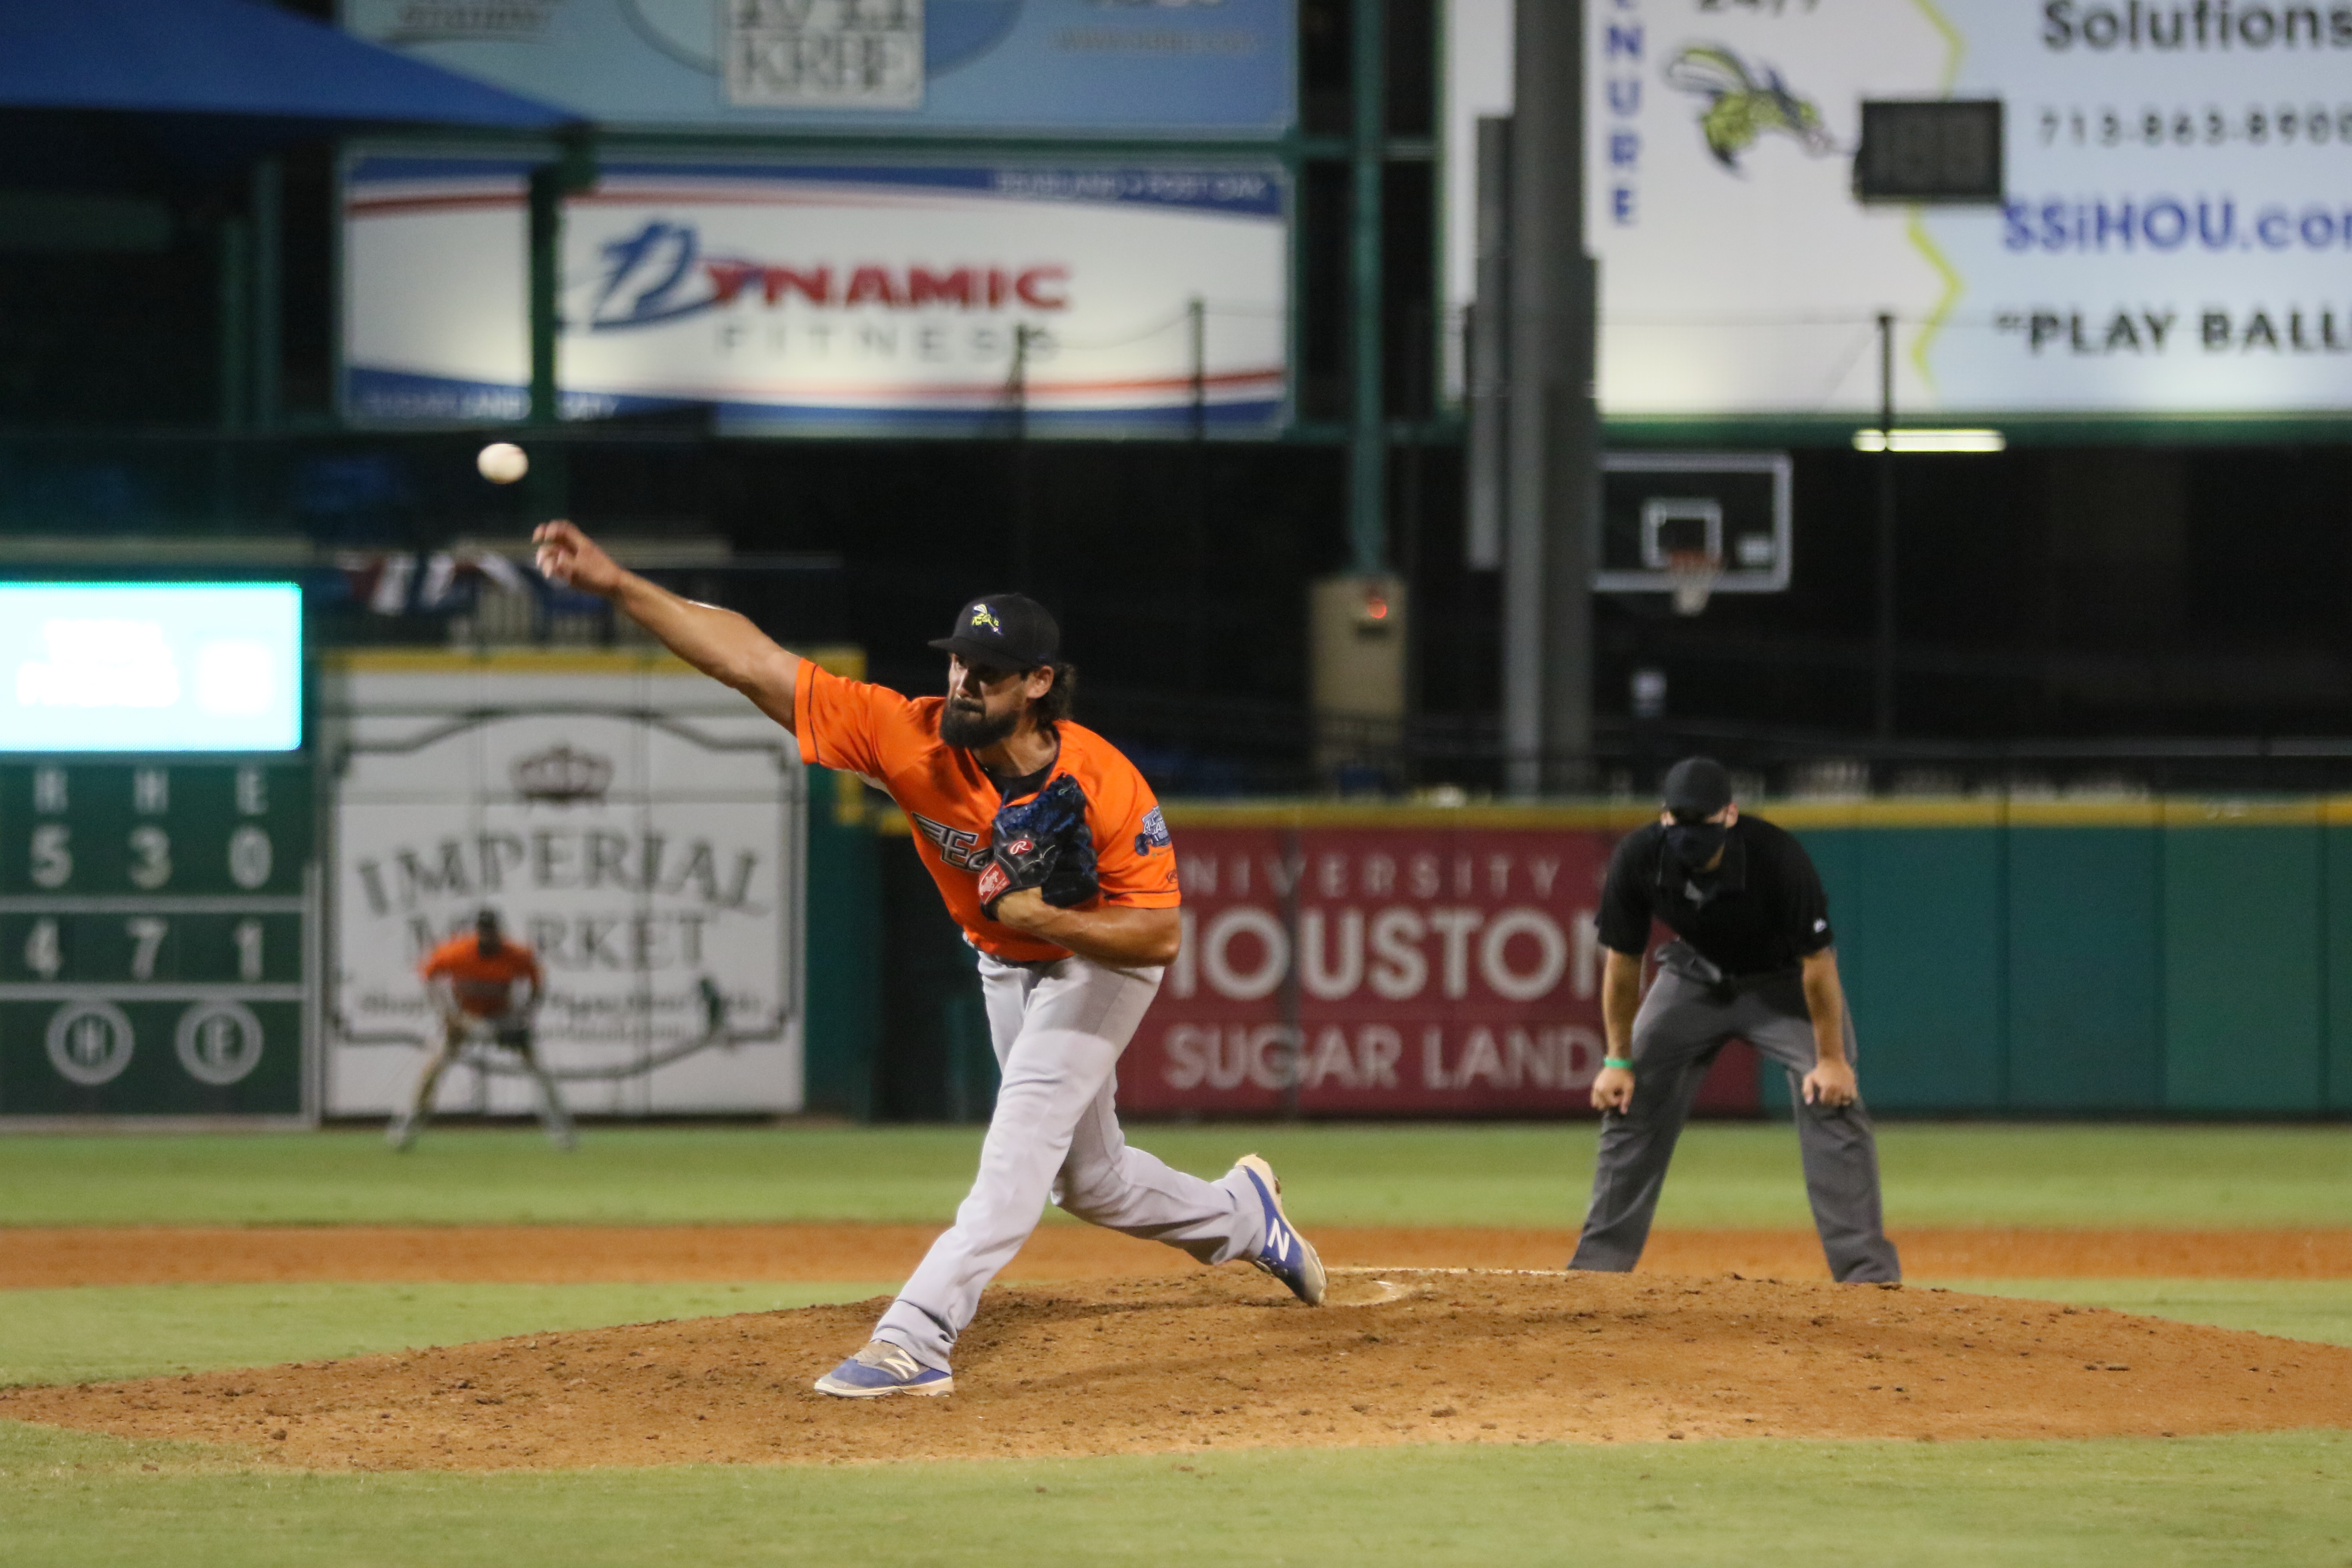 Miami Marlins Call Up RHP Brett Eibner to Active Roster